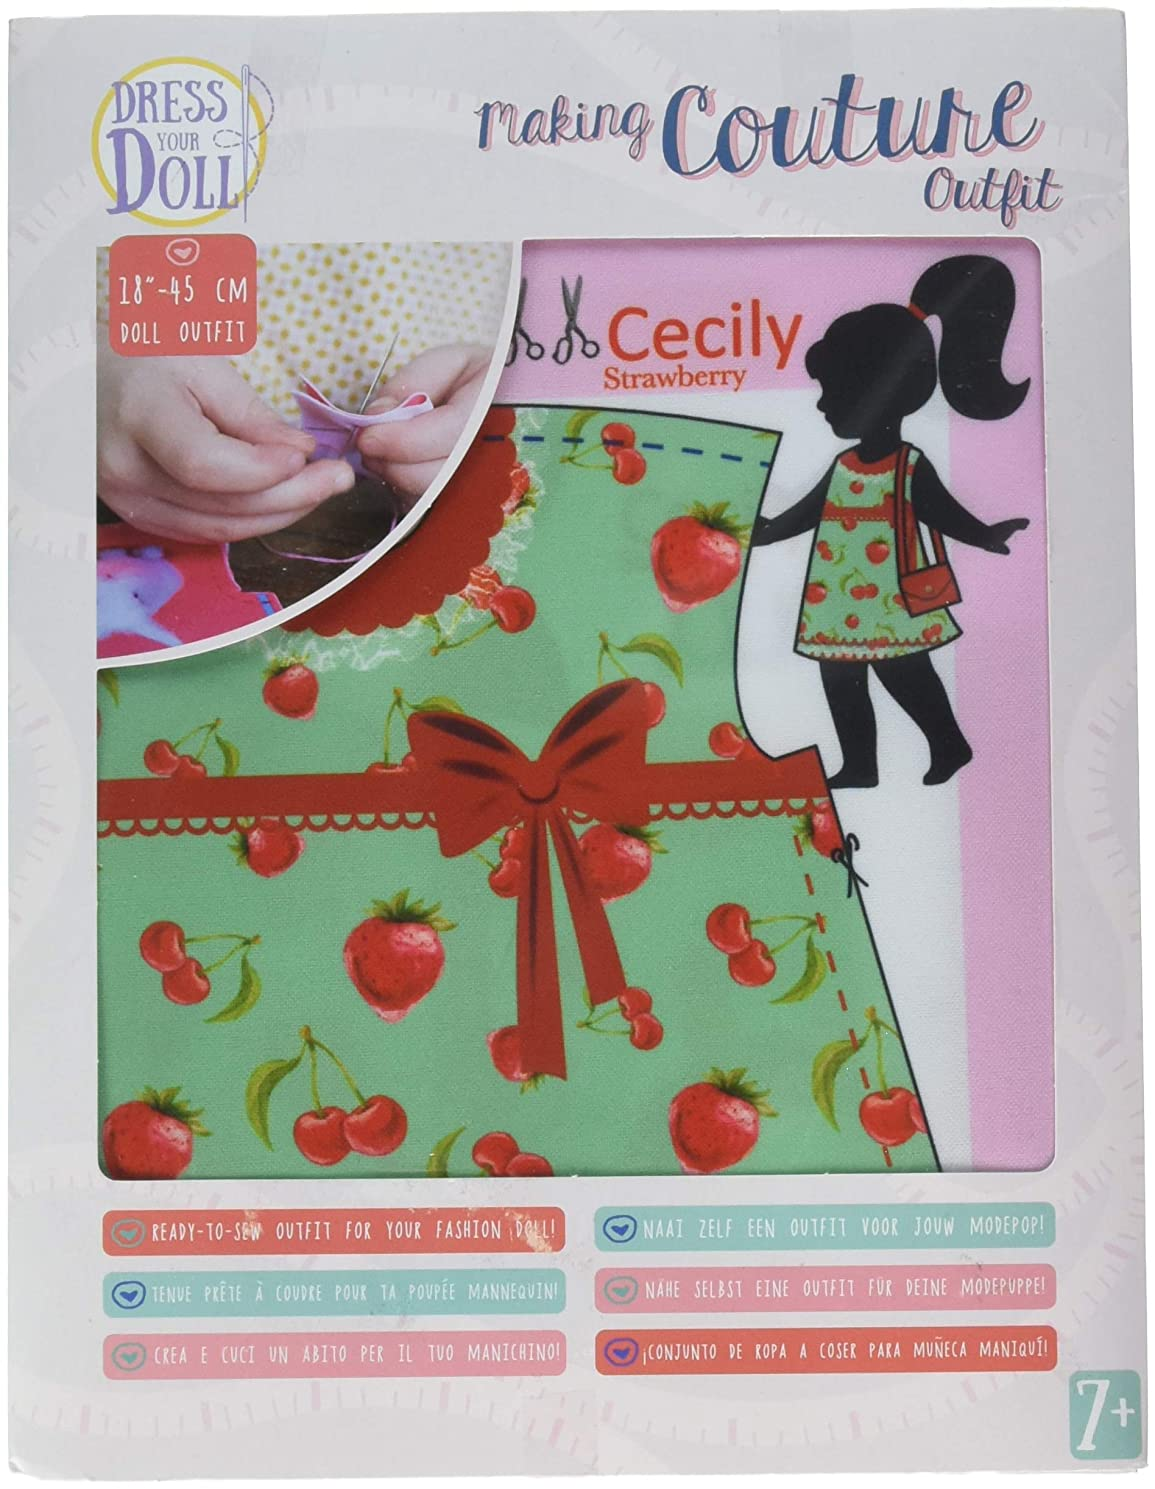 Vervaco Cecily Strawberry Dress Your Doll Making Couture Outfit Set